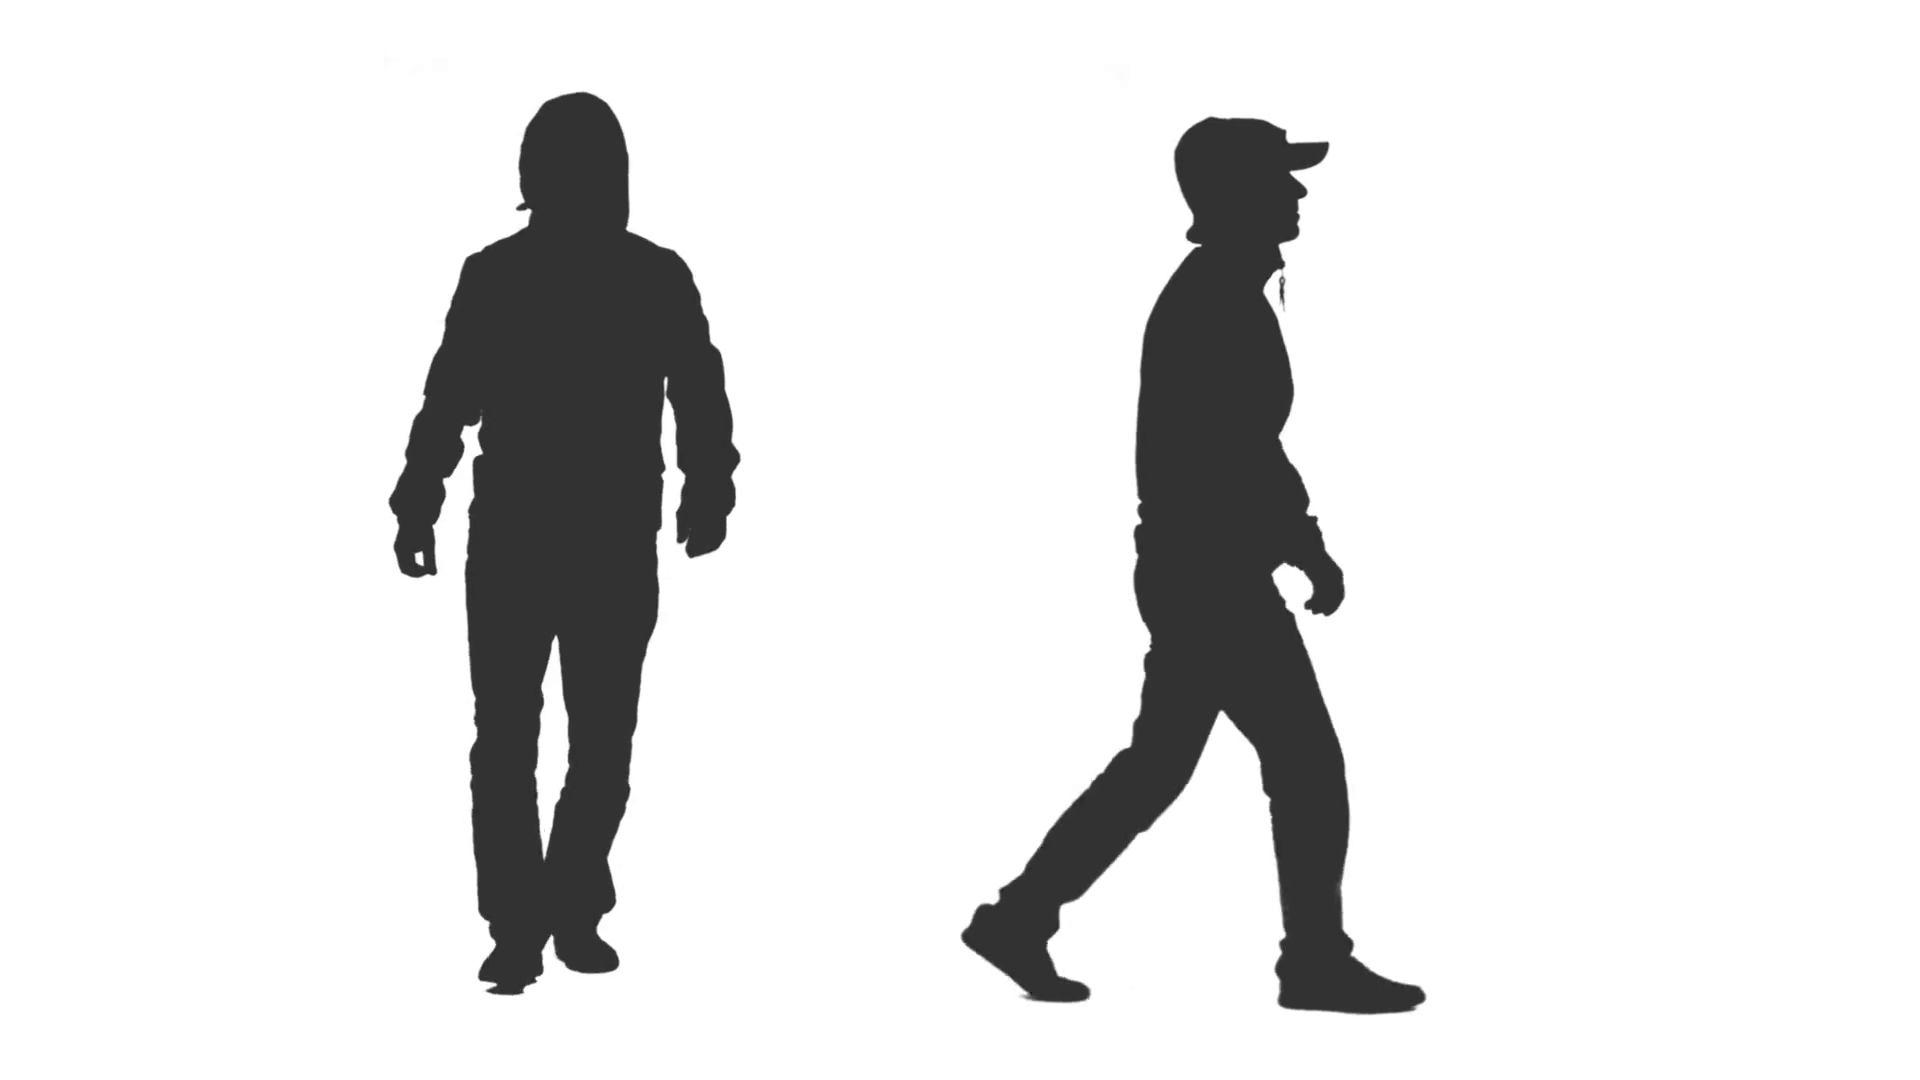 1920x1080 Silhouette Hooded Man Walking On Transparent Background, 2 In 1